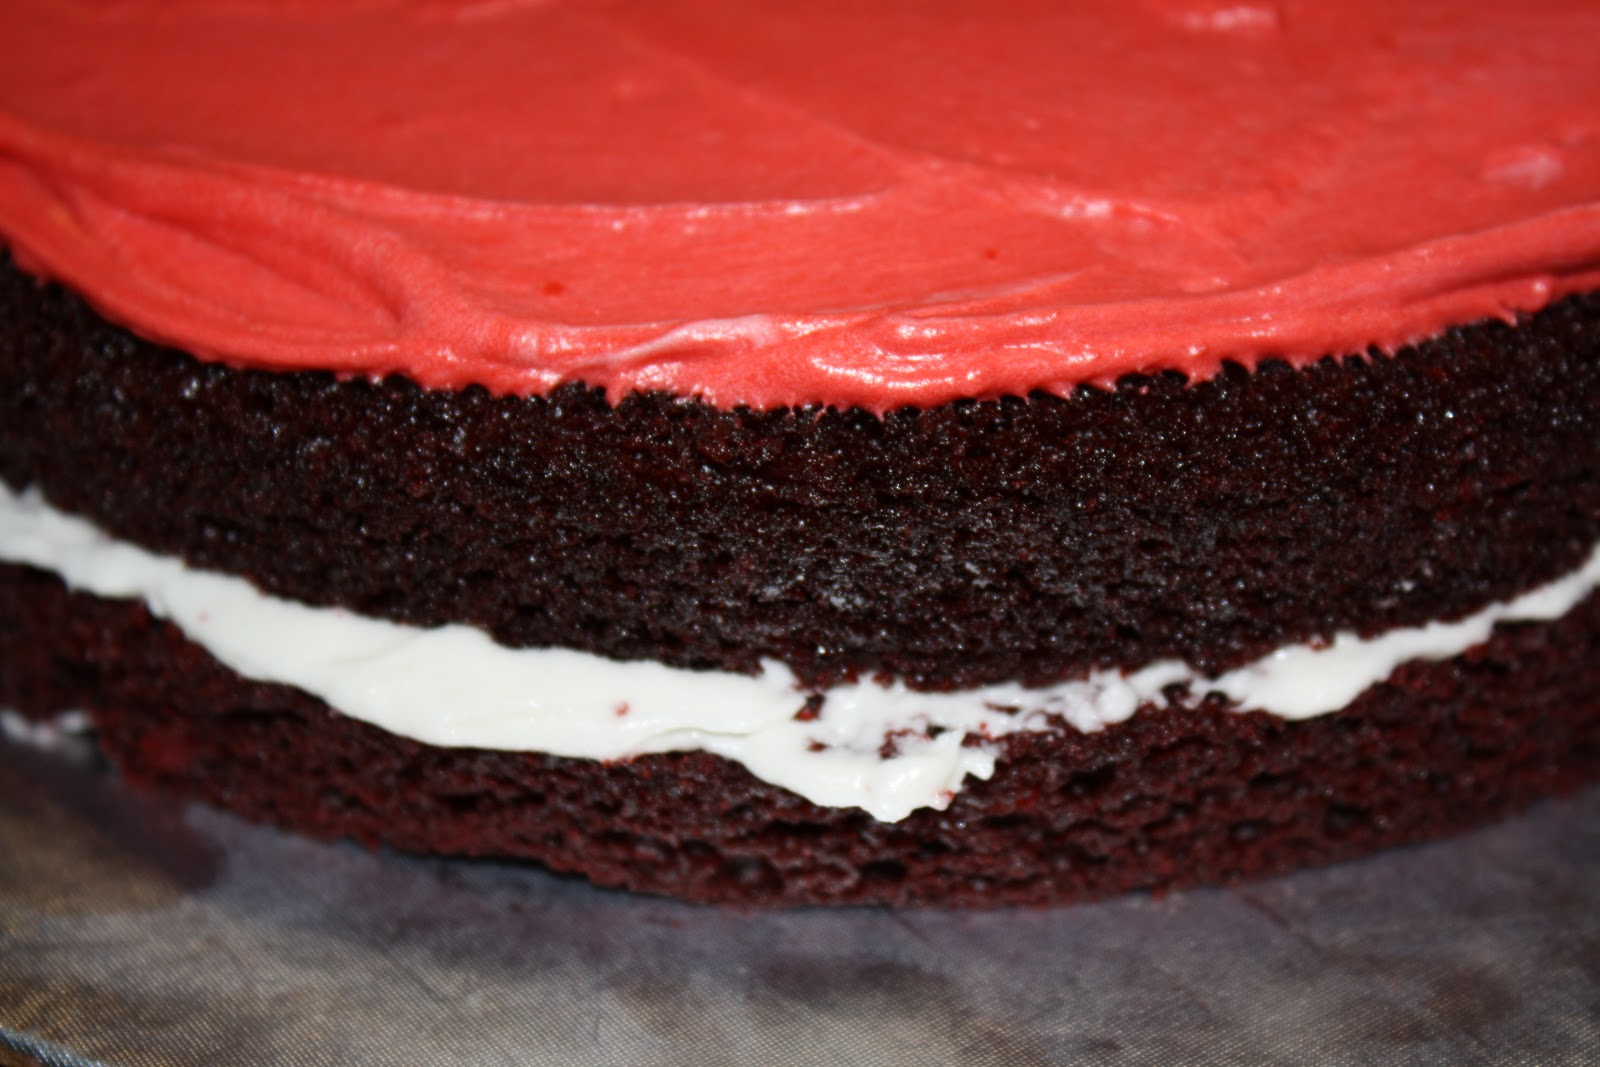 The Hungry Dudes Red Velvet Cake